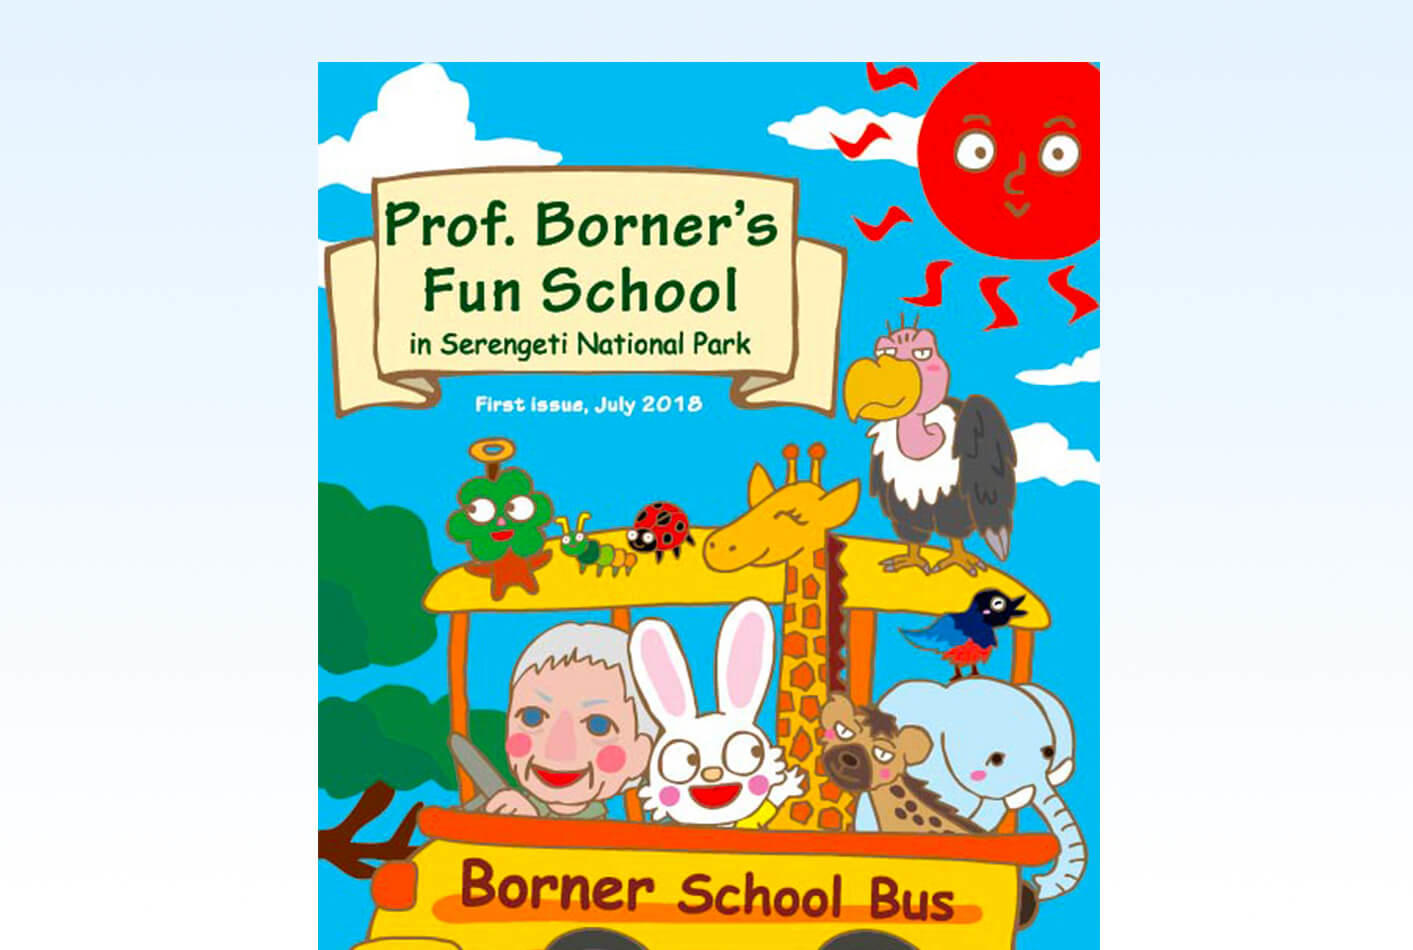 Prof. Borner's Fun School was Published